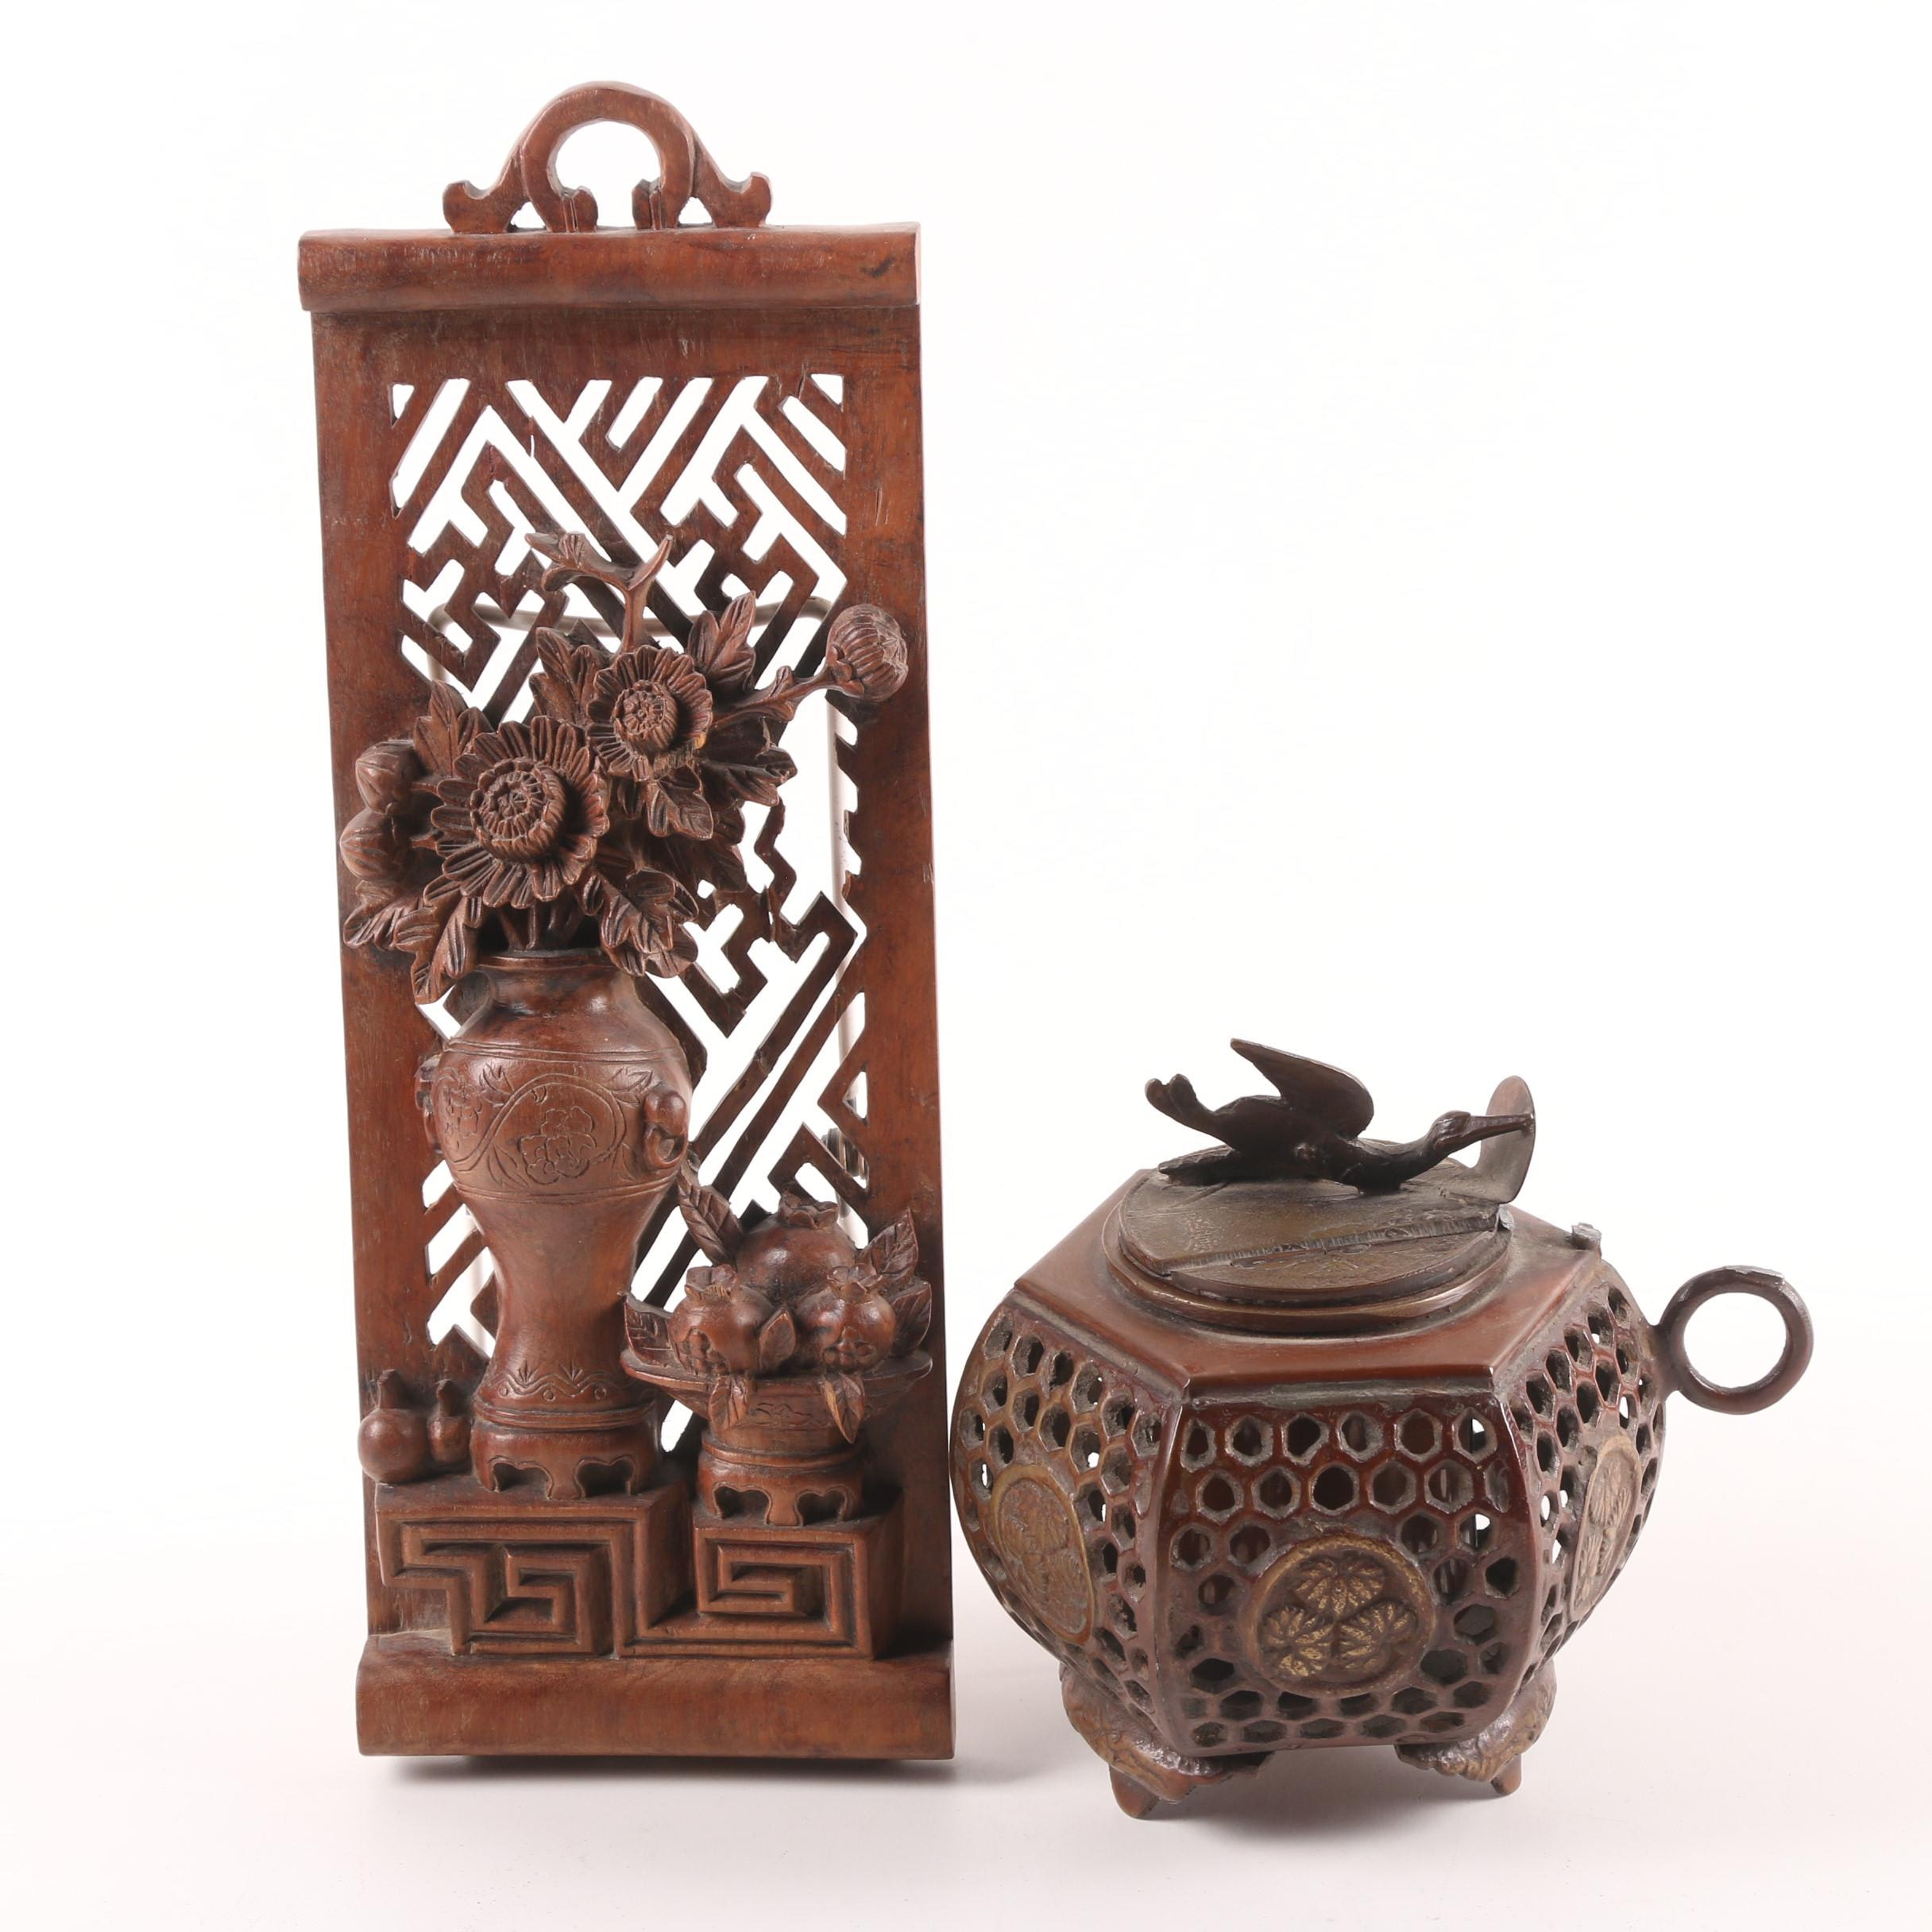 Chinese Carved Wooden Floral and Fret Panel and Censer with Crane Motif